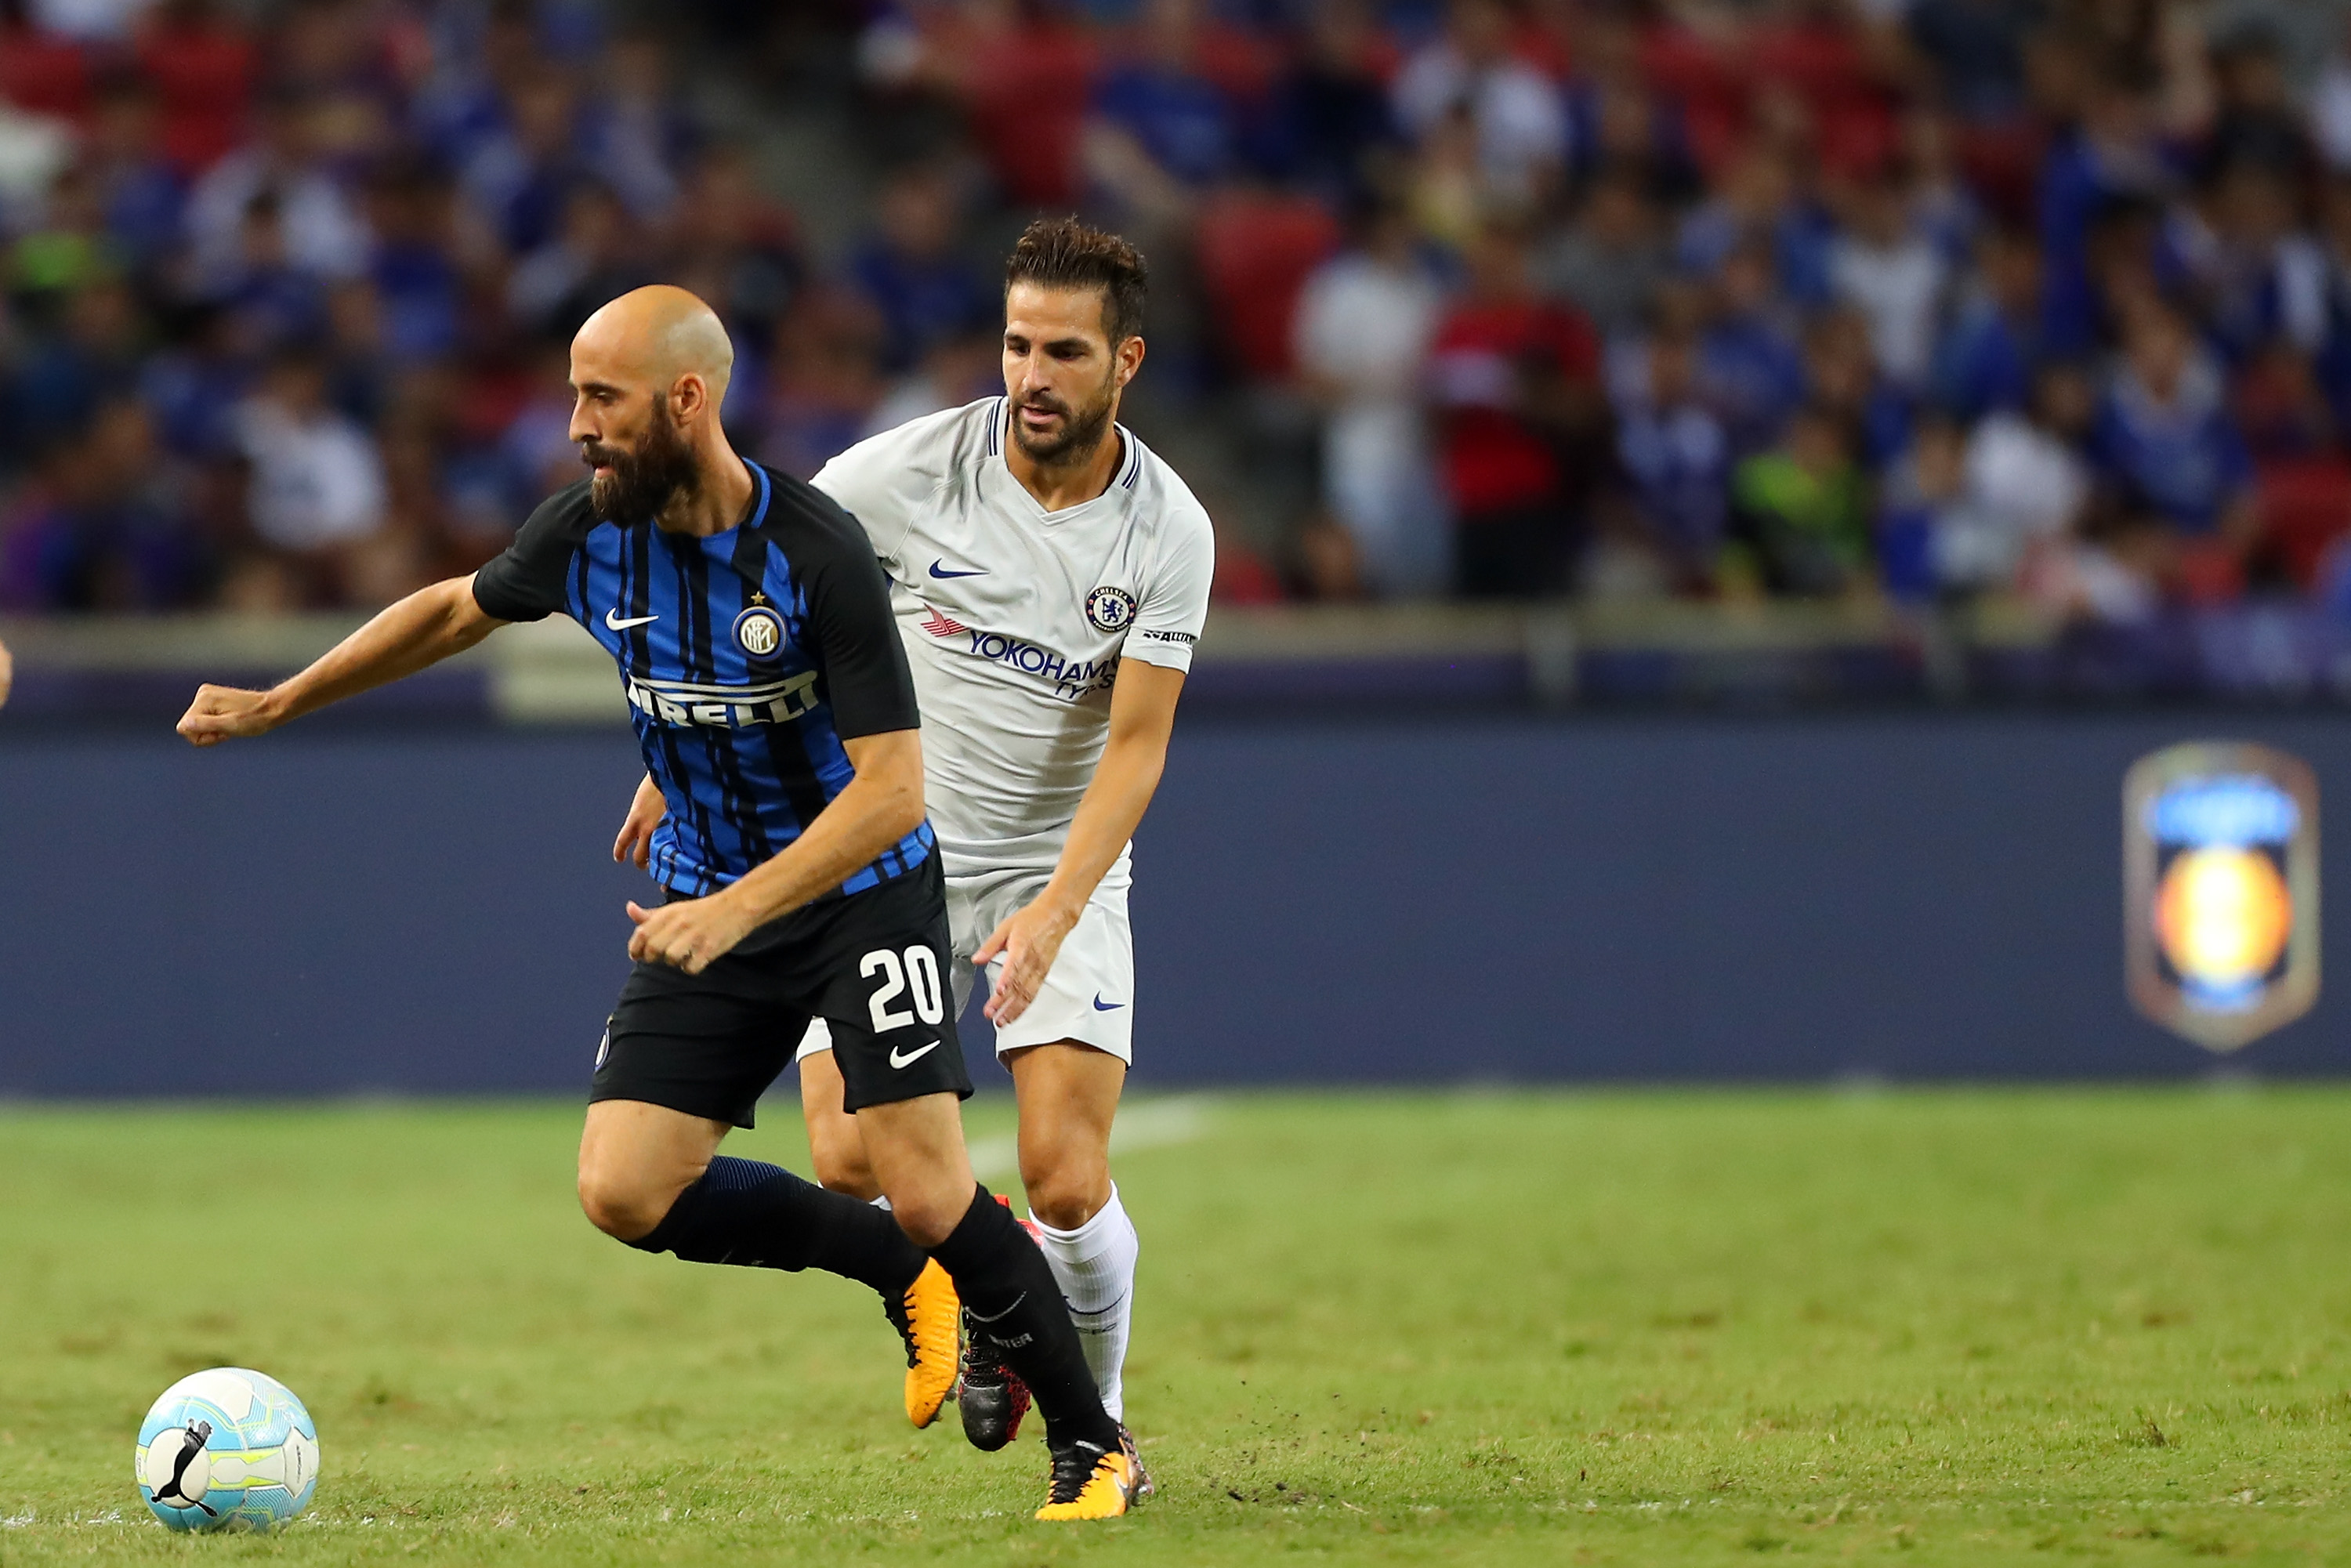 SINGAPORE - JULY 29: Borja Valero of FC Internazionale is checked by Cesc Fabregas of Chelsea FC during the International Champions Cup match between FC Internazionale and Chelsea FC at National Stadium on July 29, 2017 in Singapore. (Photo by Stanley Chou/Getty Images for ICC)